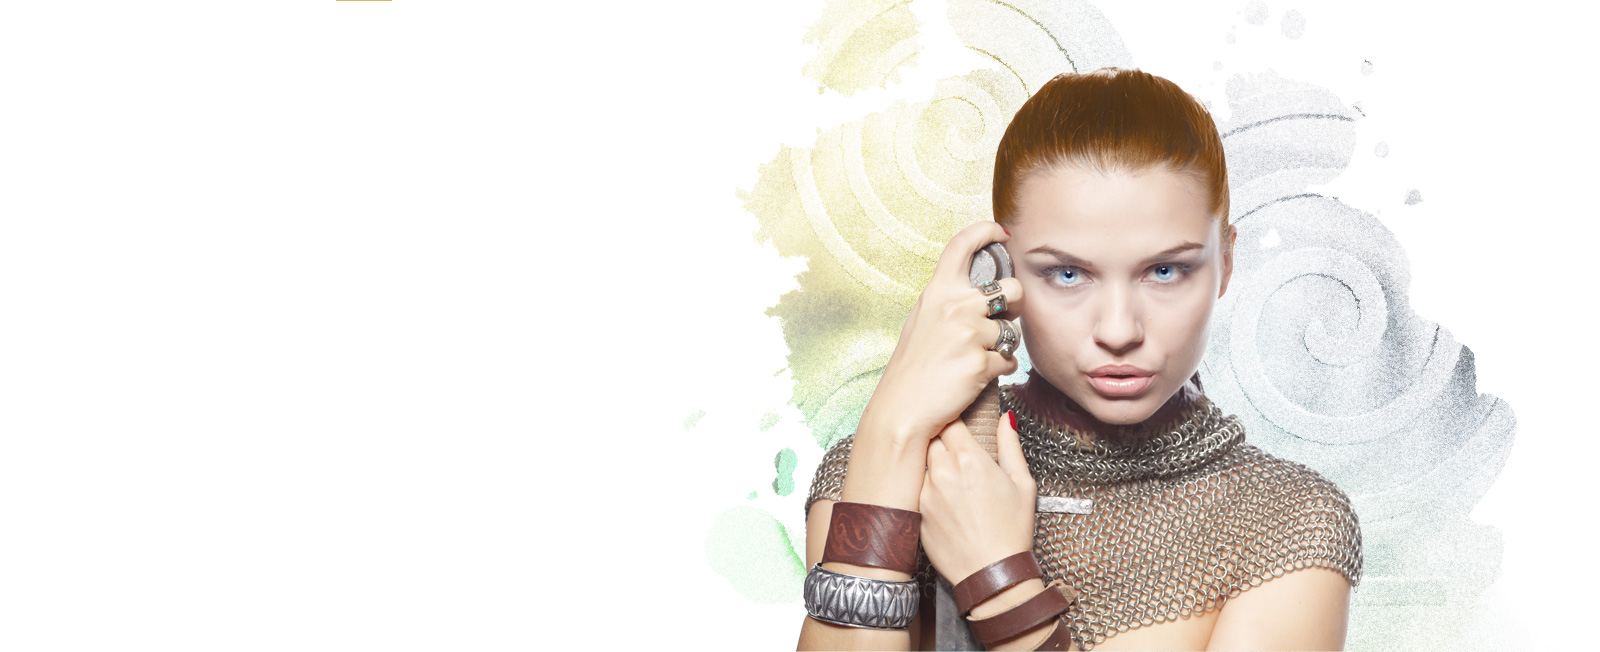 viking jewelry ireland viking wedding bands We are delighted to offer you Viking jewelry based on the designs of the amazing array of artefacts found at Dublin s Wood Quay so you can keep alive